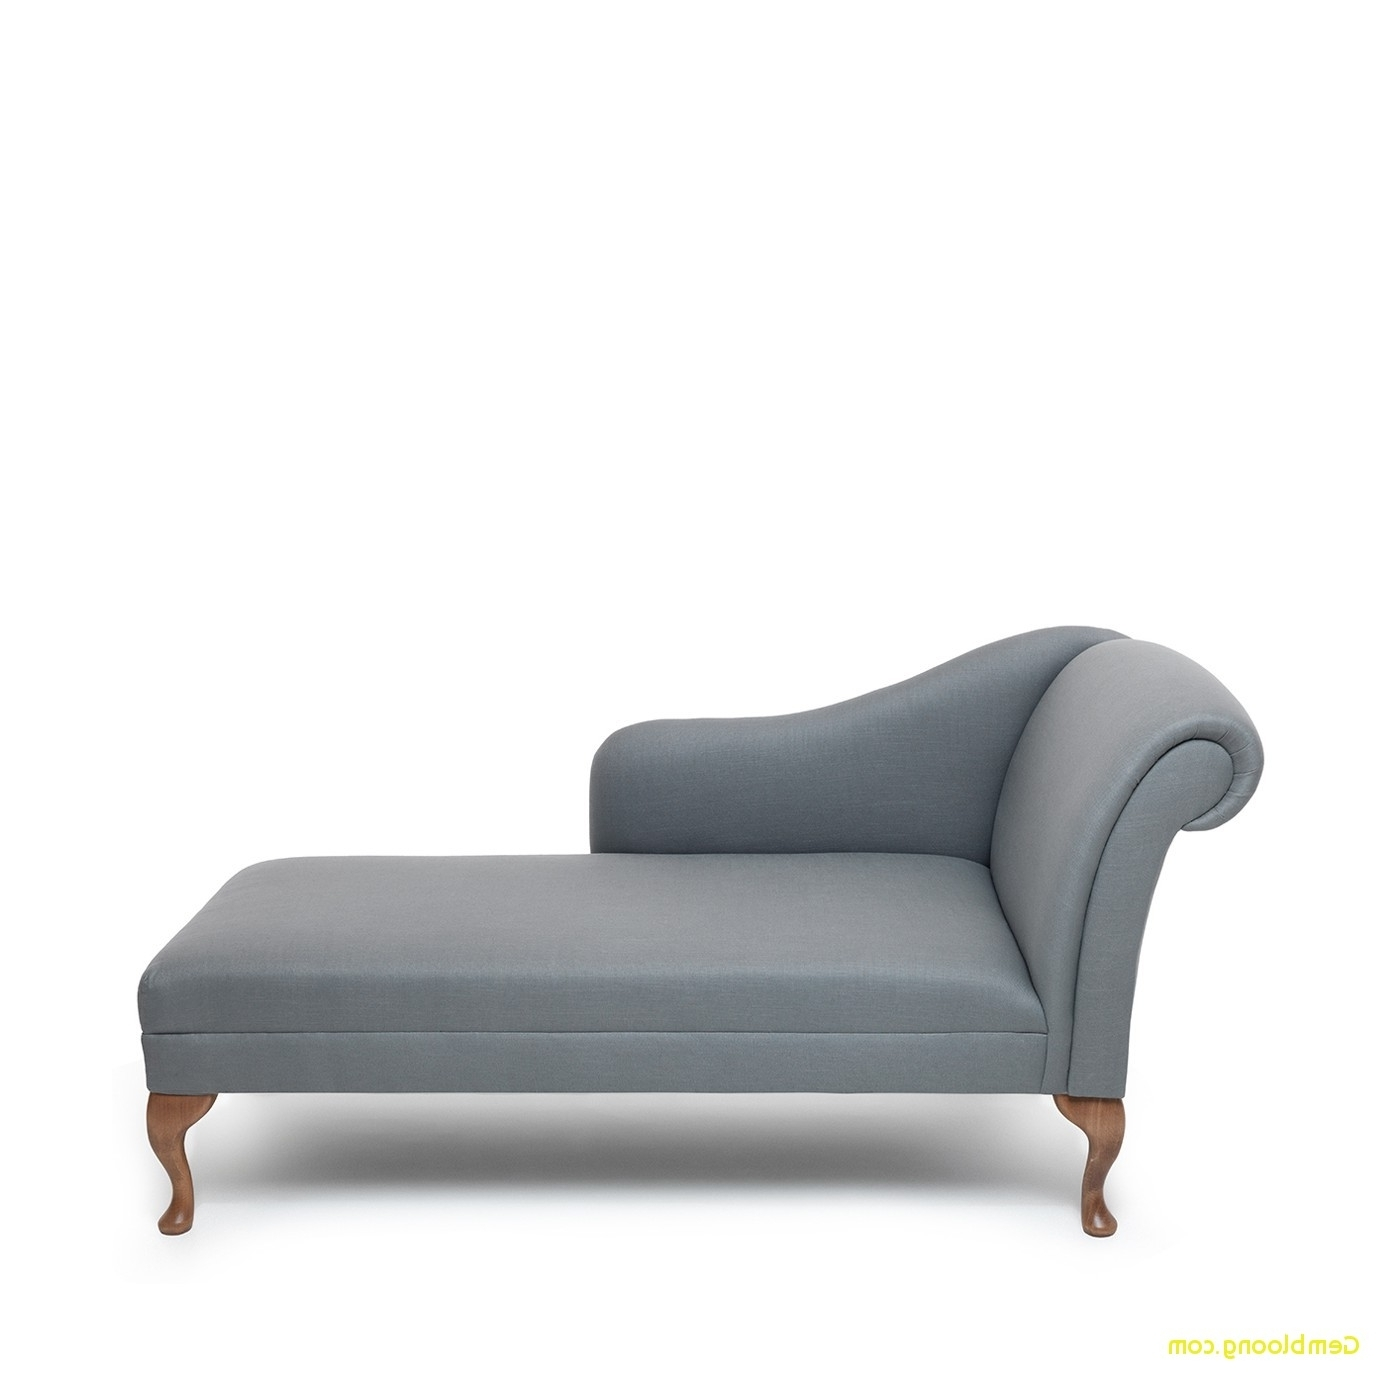 Grey Chaise Lounge Inspirational Garbo Linen Chaise Longue Soft With Current Linen Chaise Lounges (View 4 of 15)